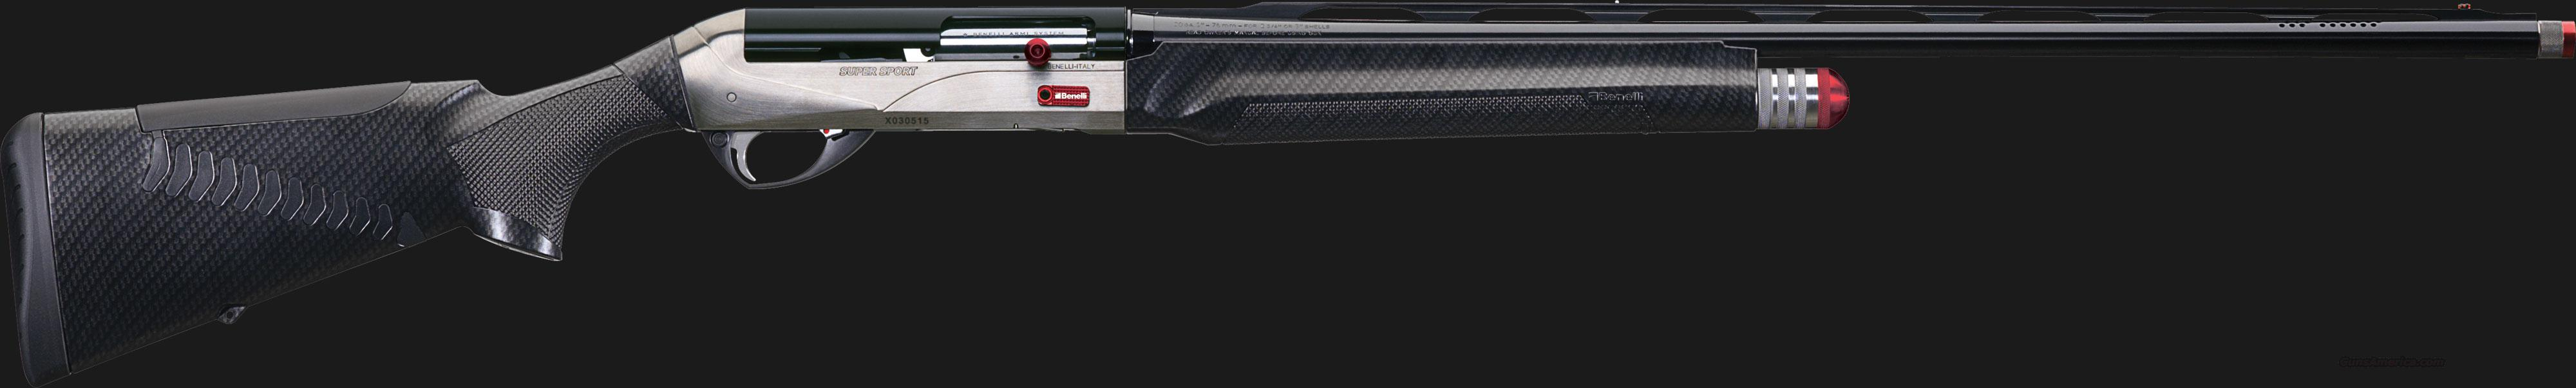 "Benelli Performance Shop SuperSport 12ga 30"" (10634)  Guns > Shotguns > Benelli Shotguns > Trap/Skeet"